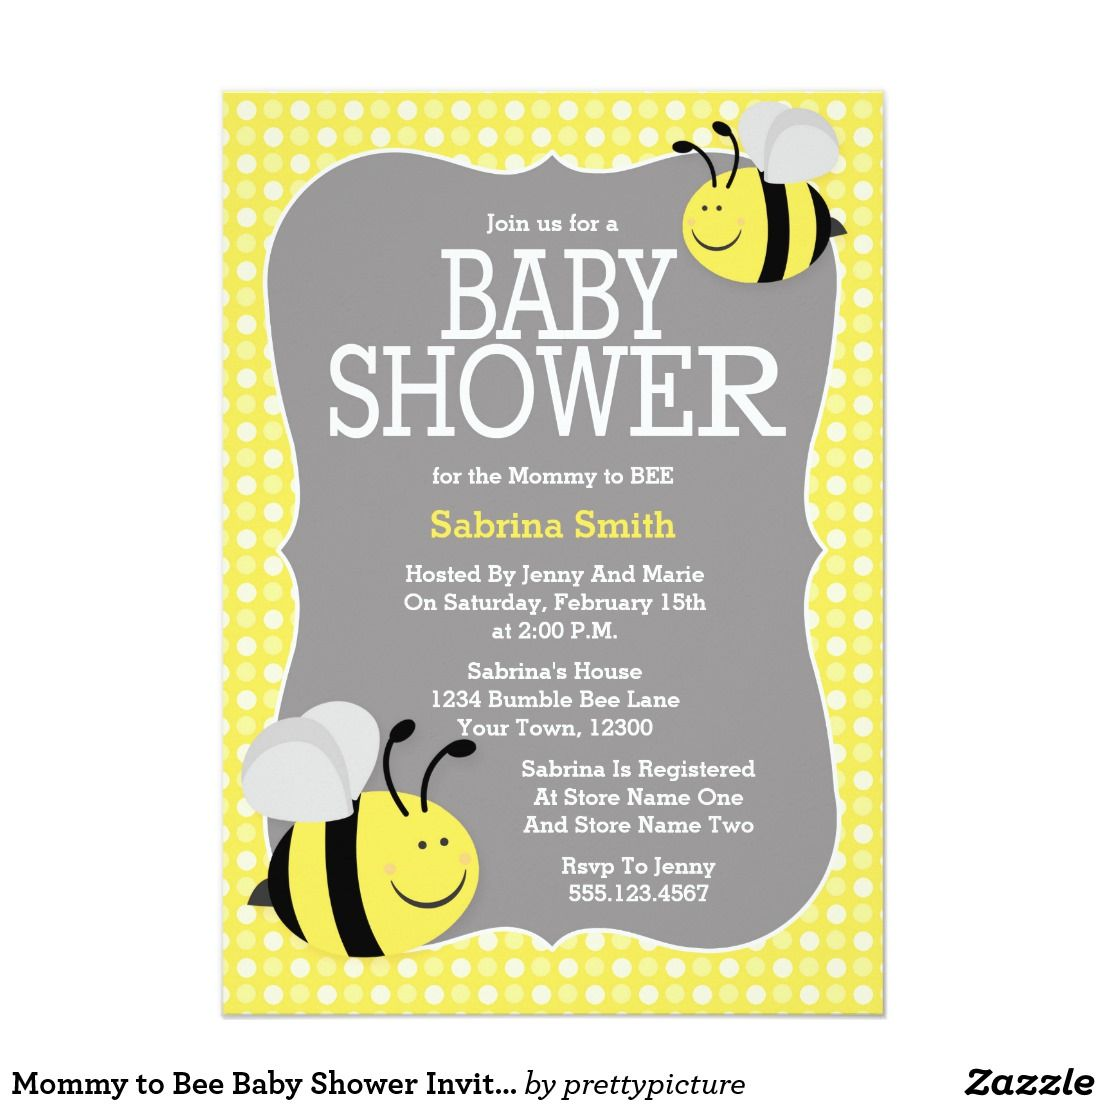 Mommy to Bee Baby Shower Invitation | Shower invitations, Fun baby ...